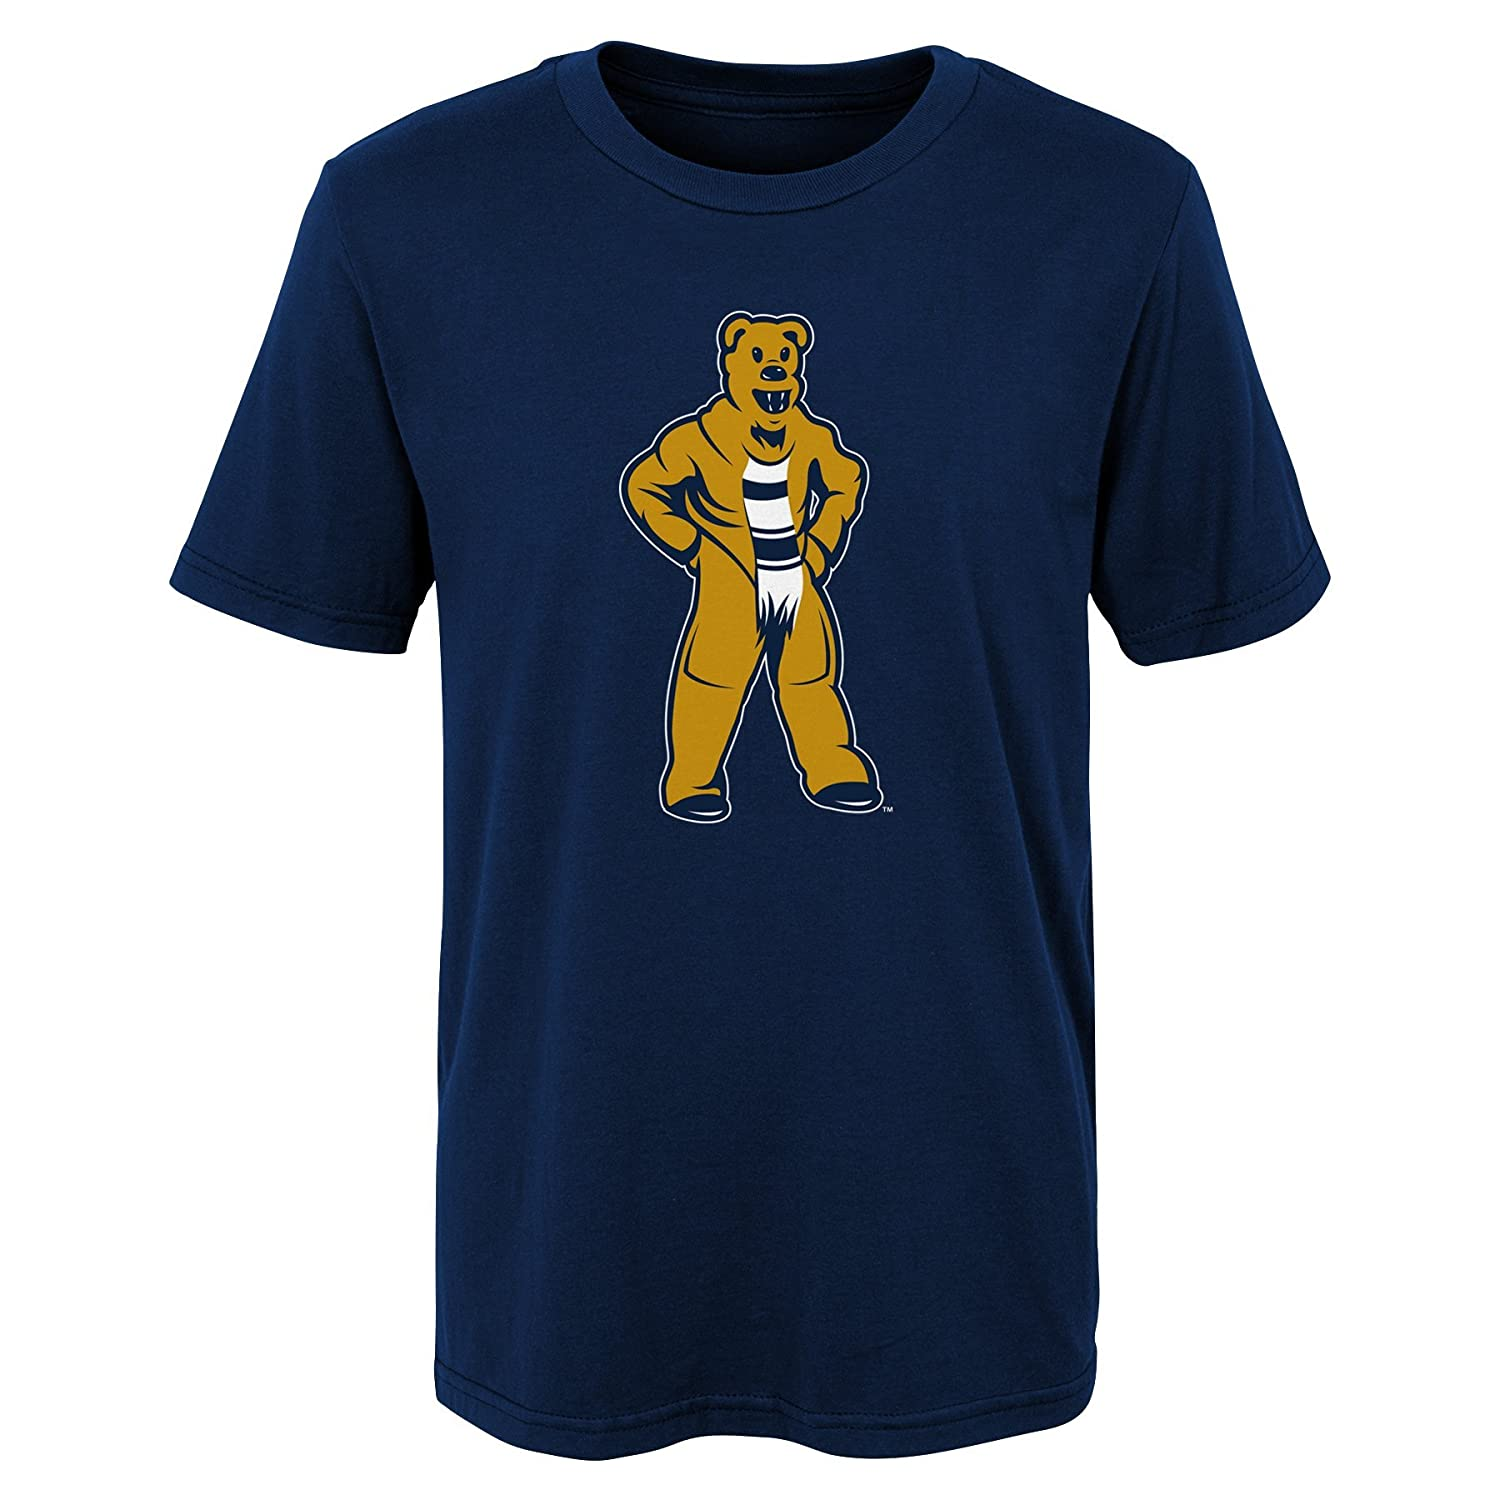 Navy Kids Large 7 Outerstuff NCAA Penn State Nittany Lions Kids Standing Mascot Tee